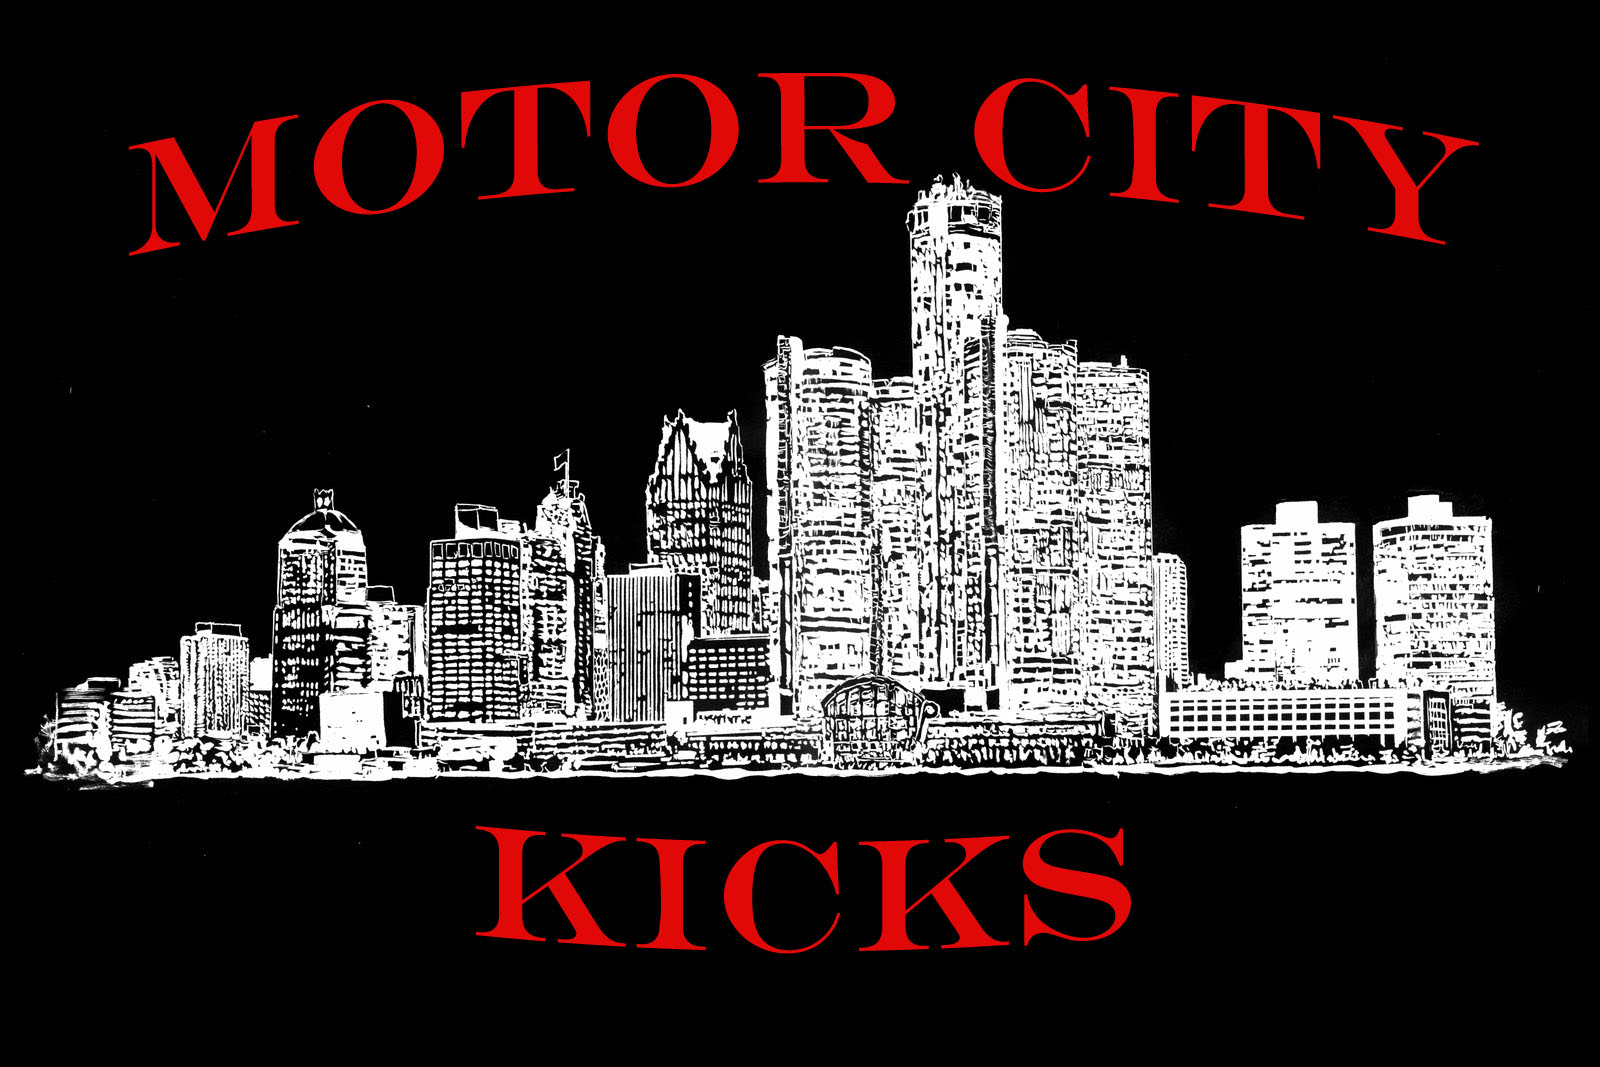 Motor City Kicks Follow Us On Instagram And Twitter